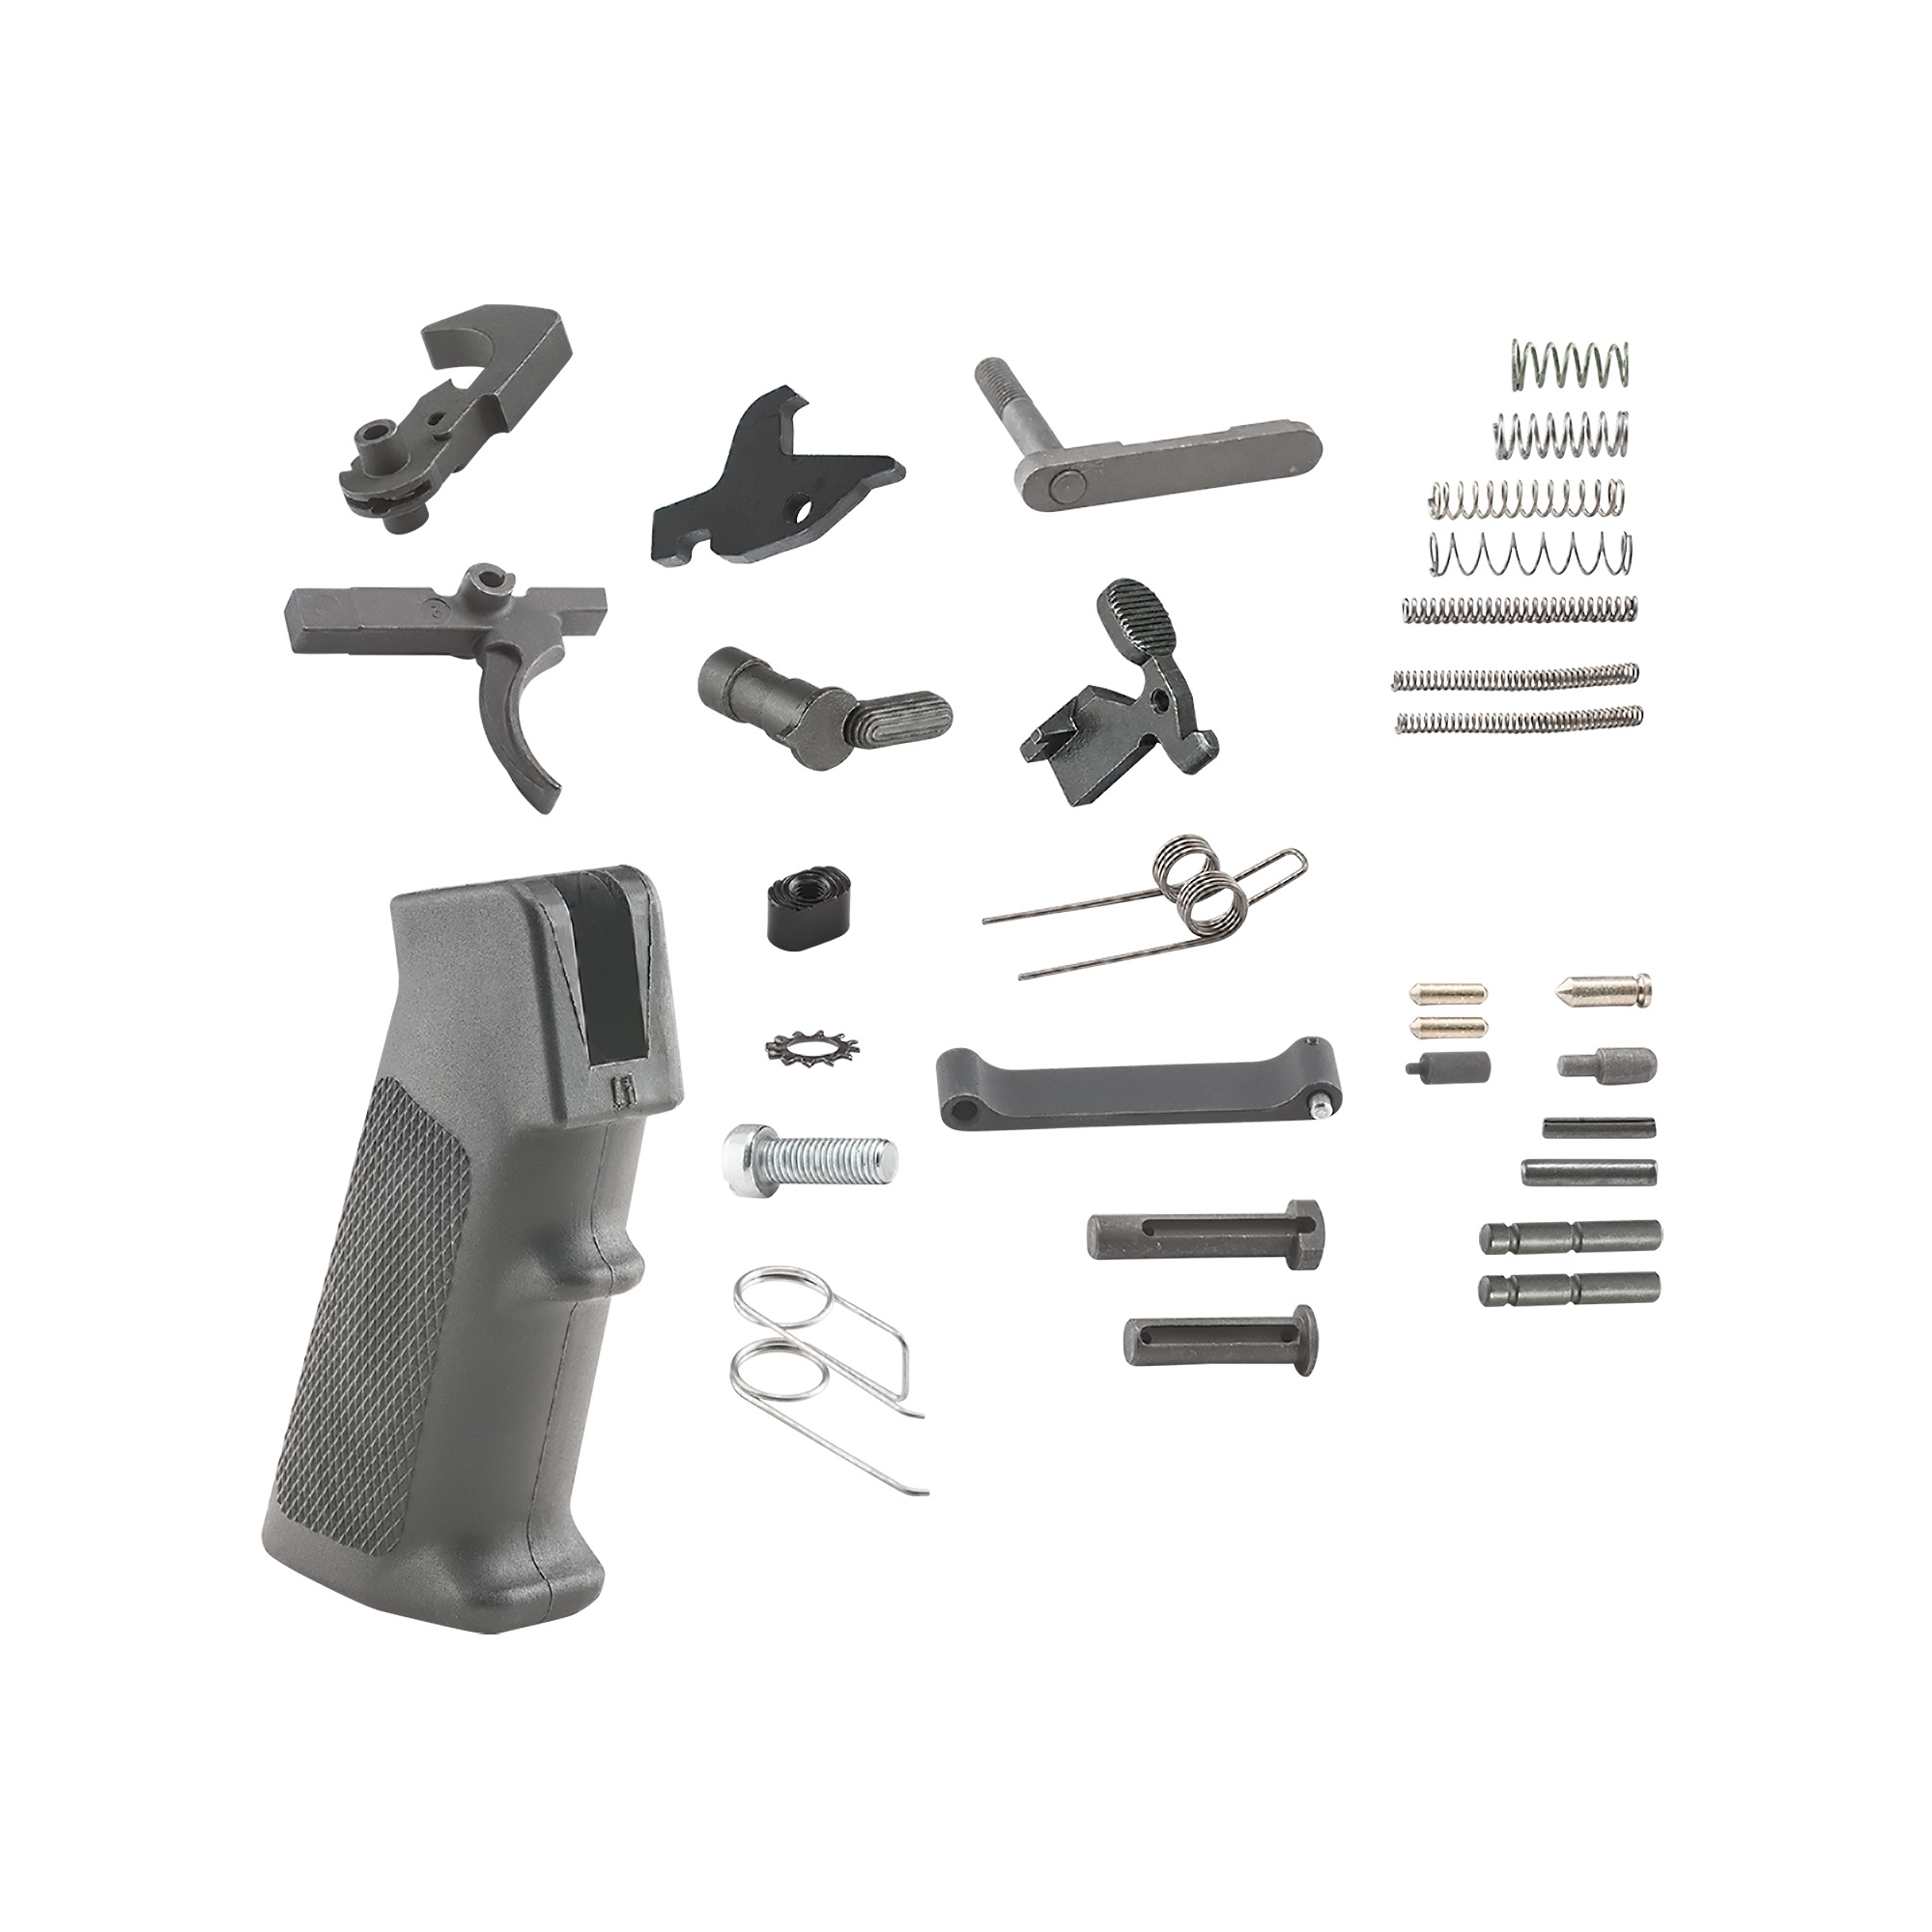 LUTH-AR complete lower parts kit for AR-15.